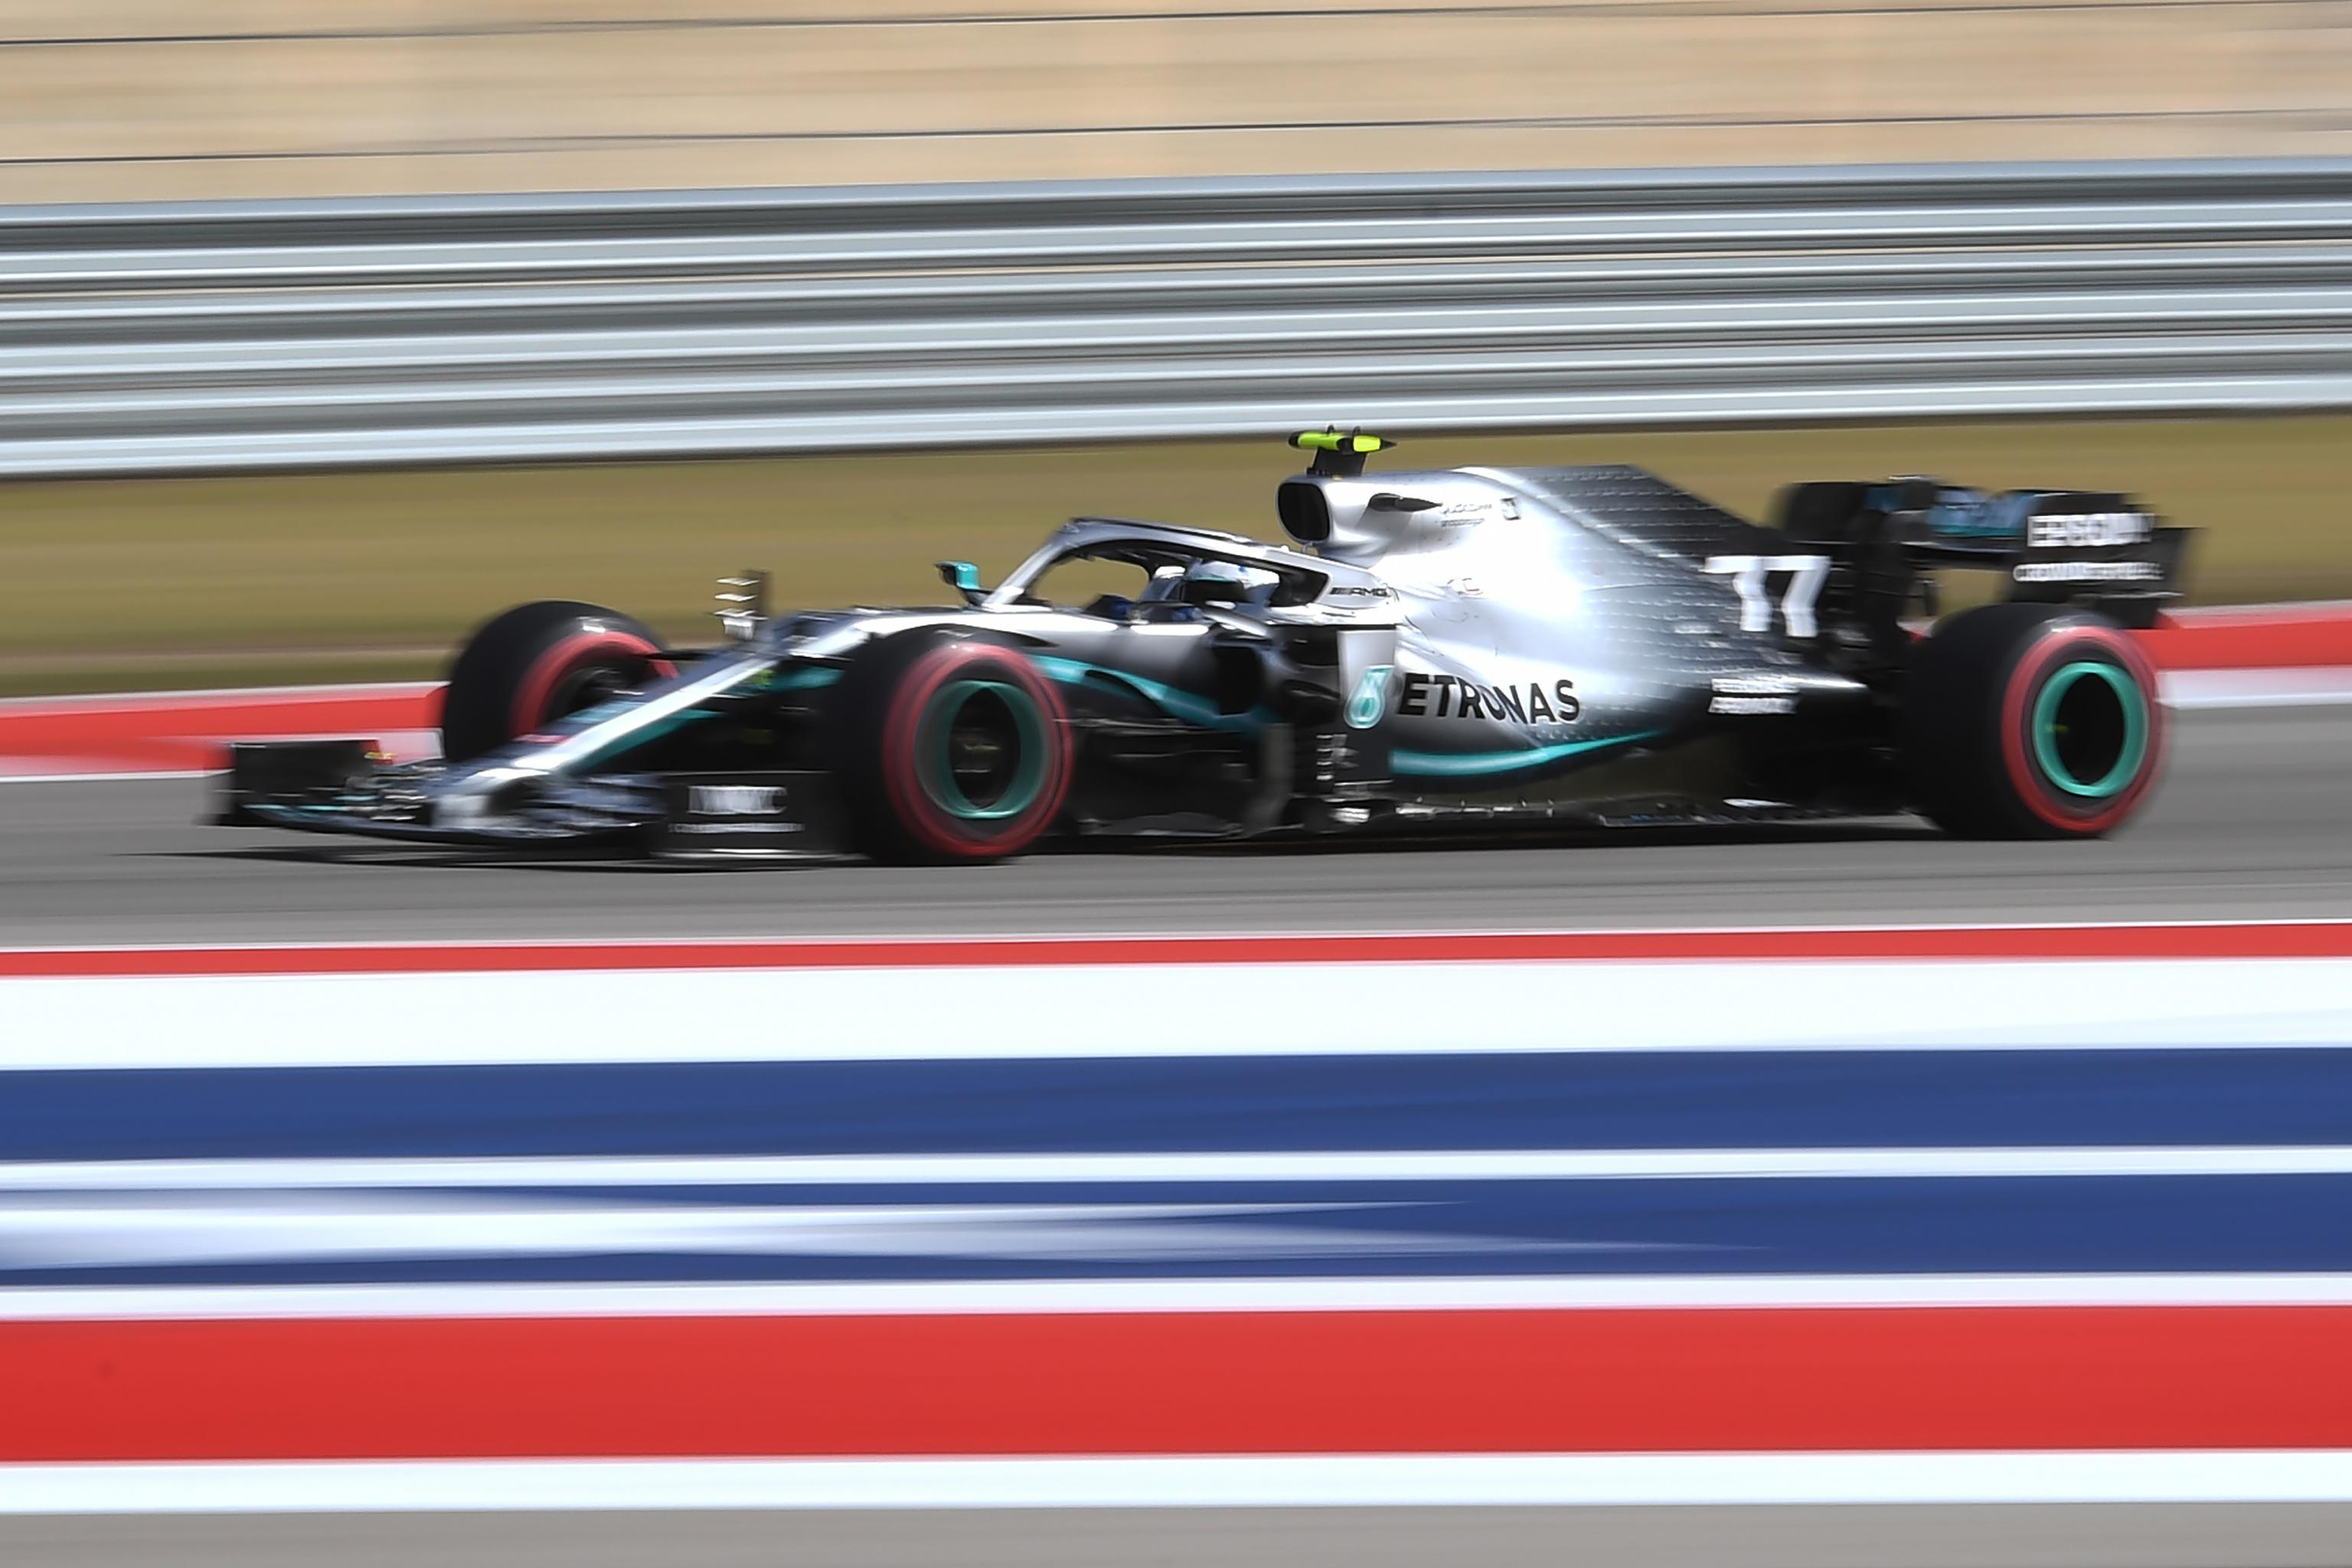 Usa F1 Grand Prix 2019 Qualifying Saturday S Results Times Final Grid Bleacher Report Latest News Videos And Highlights